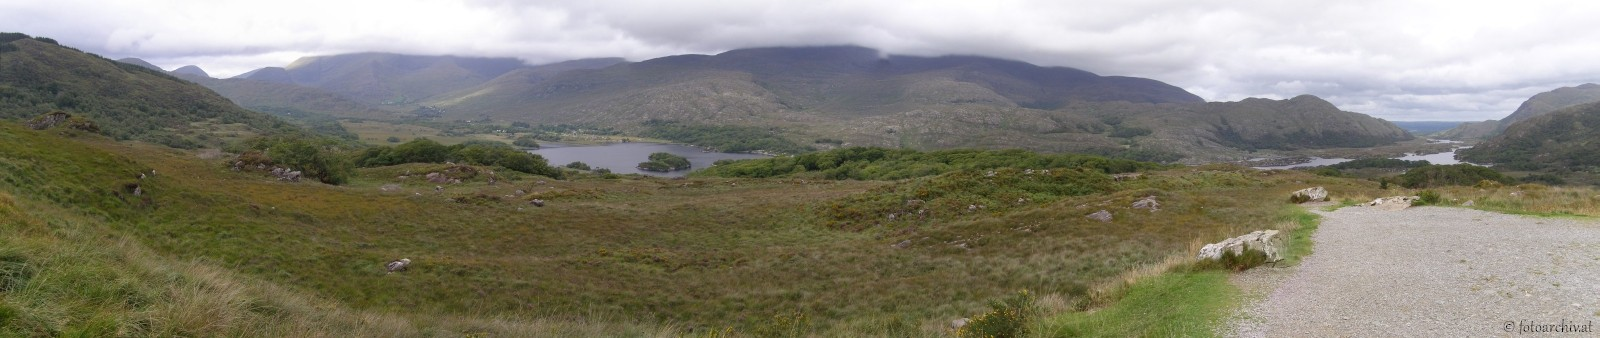 Ring of Kerry/Irland 2006 - Olympus SP500UZ